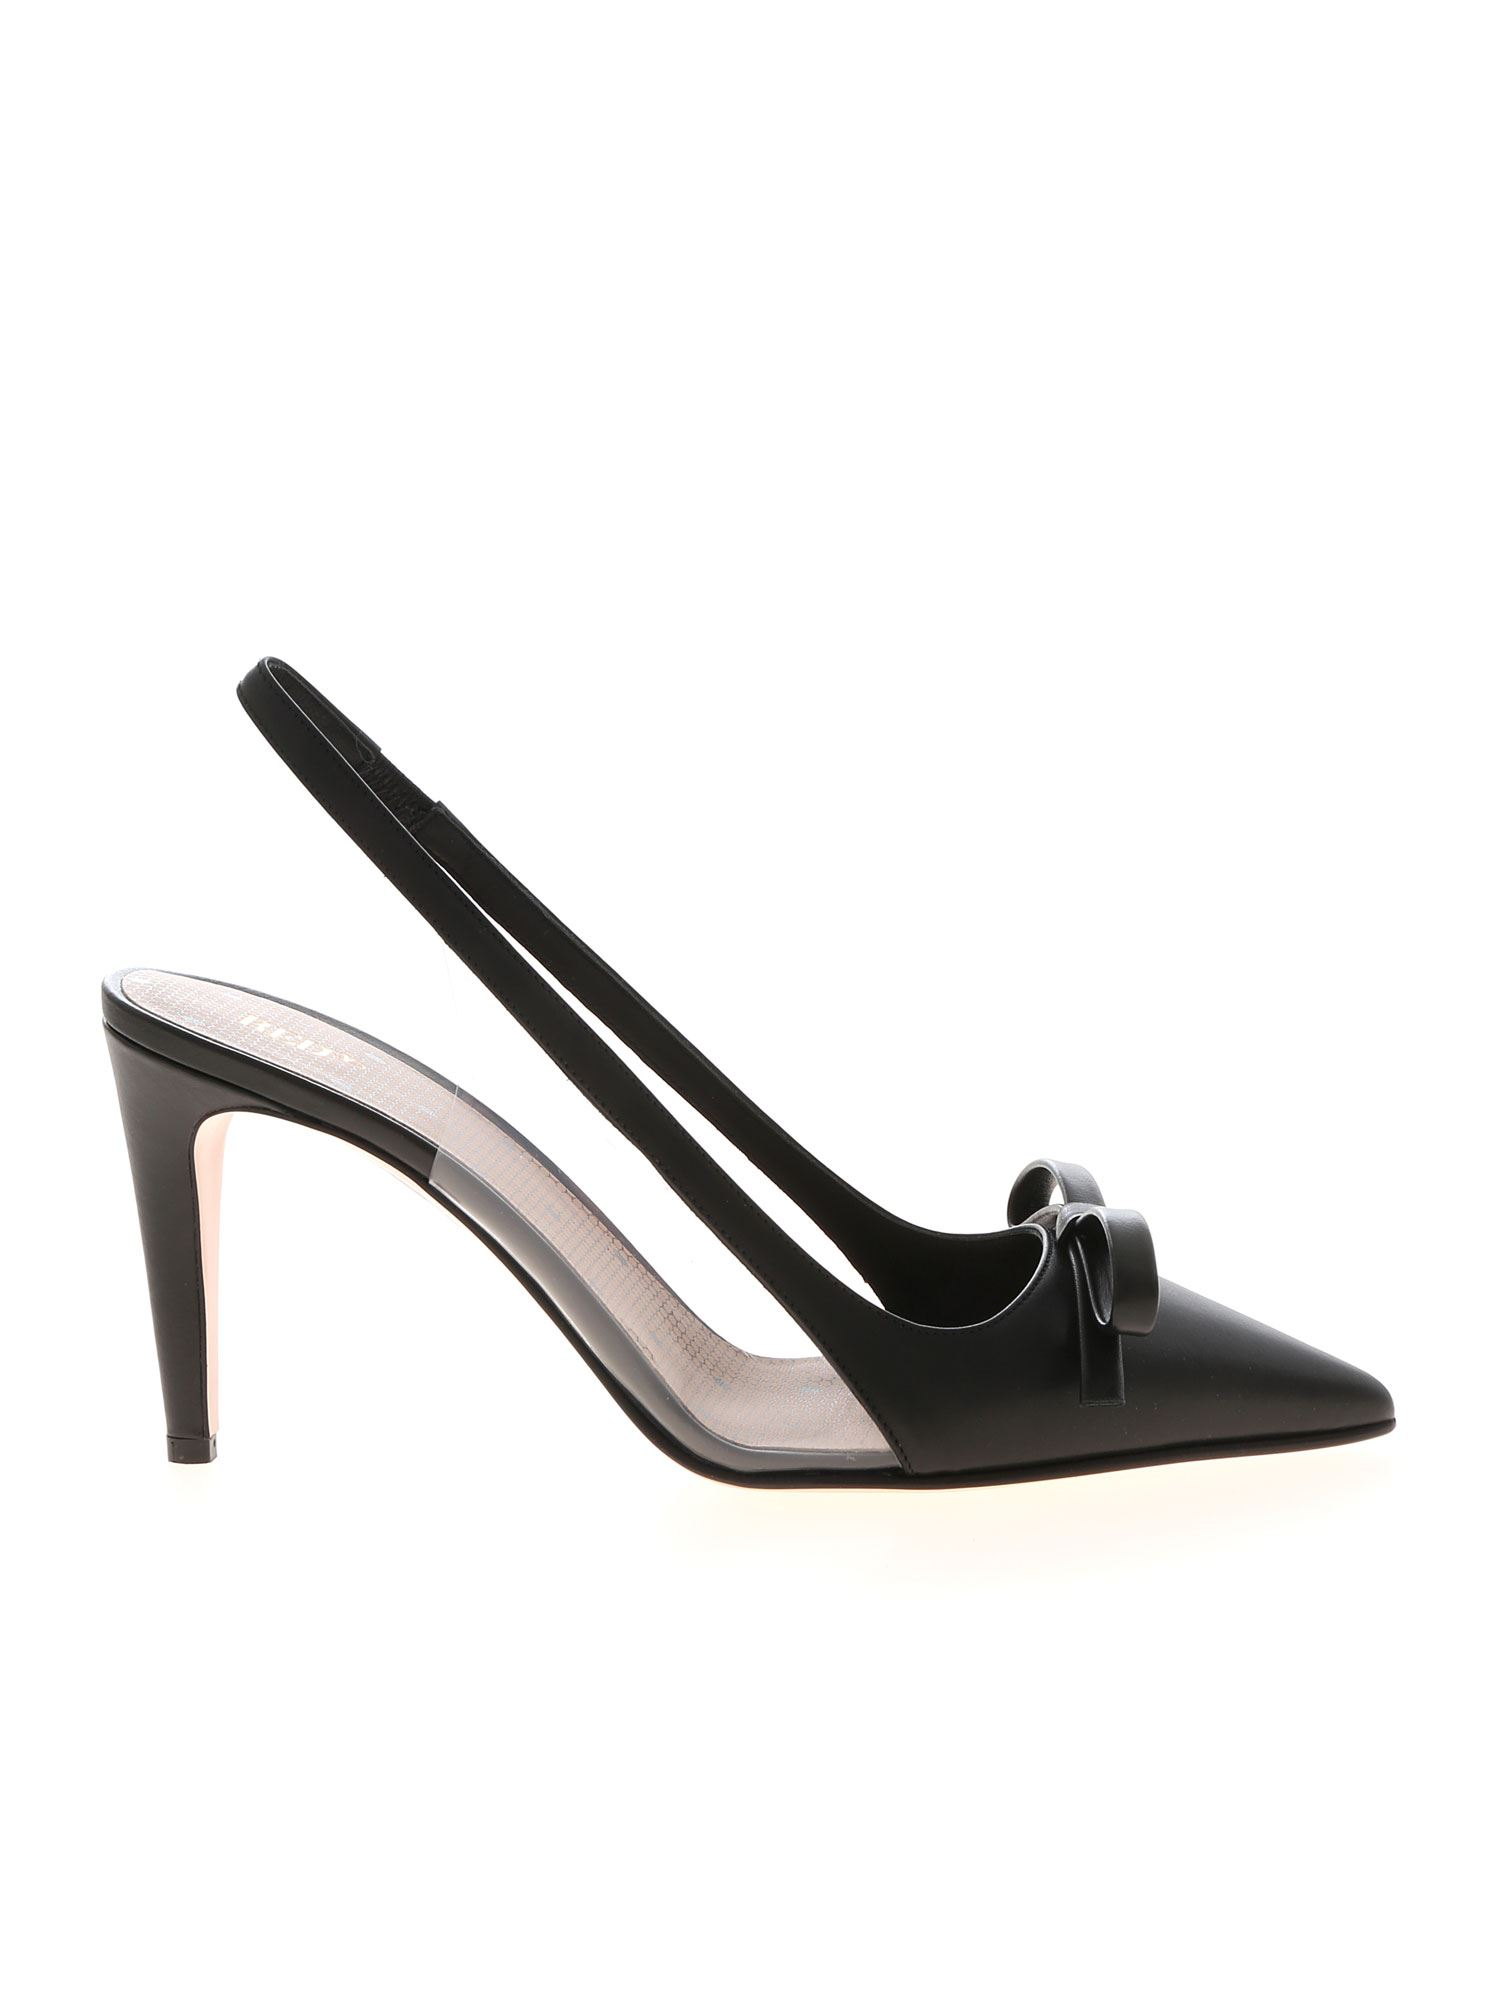 Red Valentino POINTED SLINGBACKS IN BLACK LEATHER WITH BOW